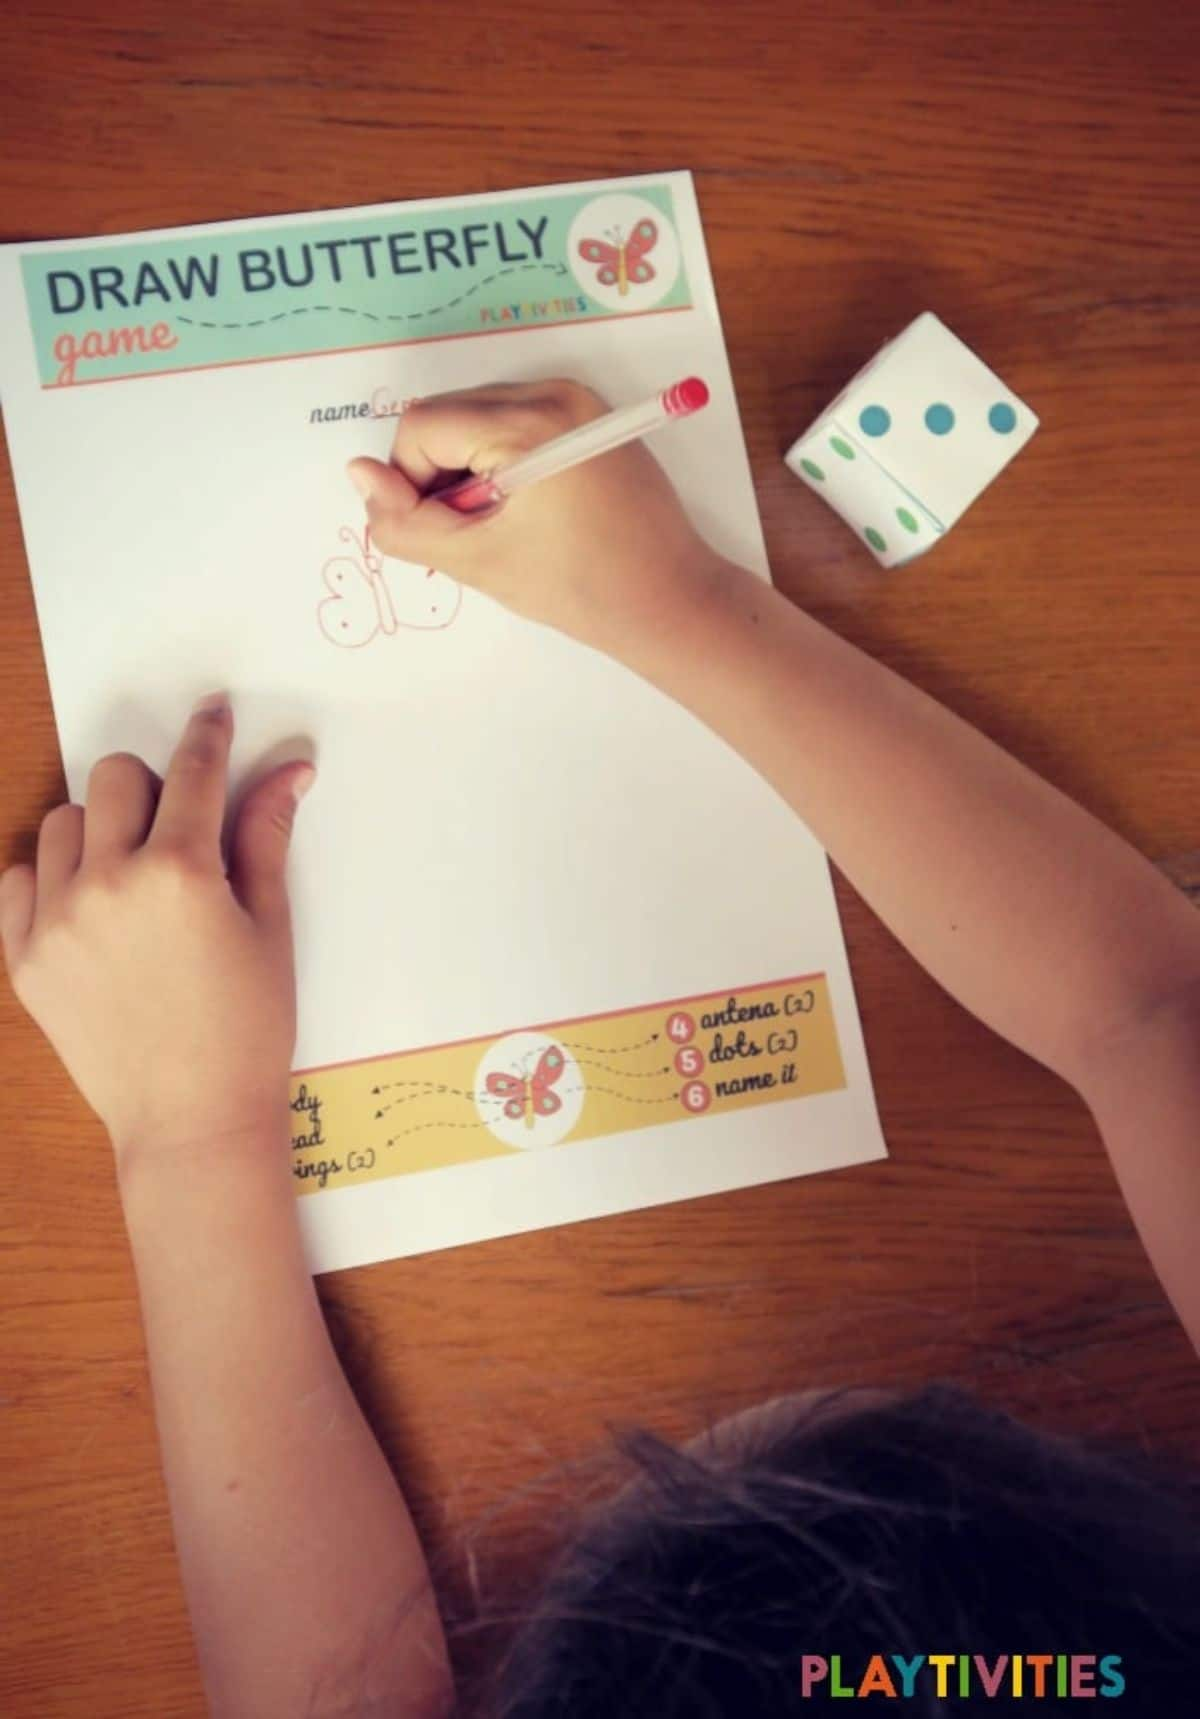 A child draws a butterfly on a piece of paper. A paper dice sits beside her